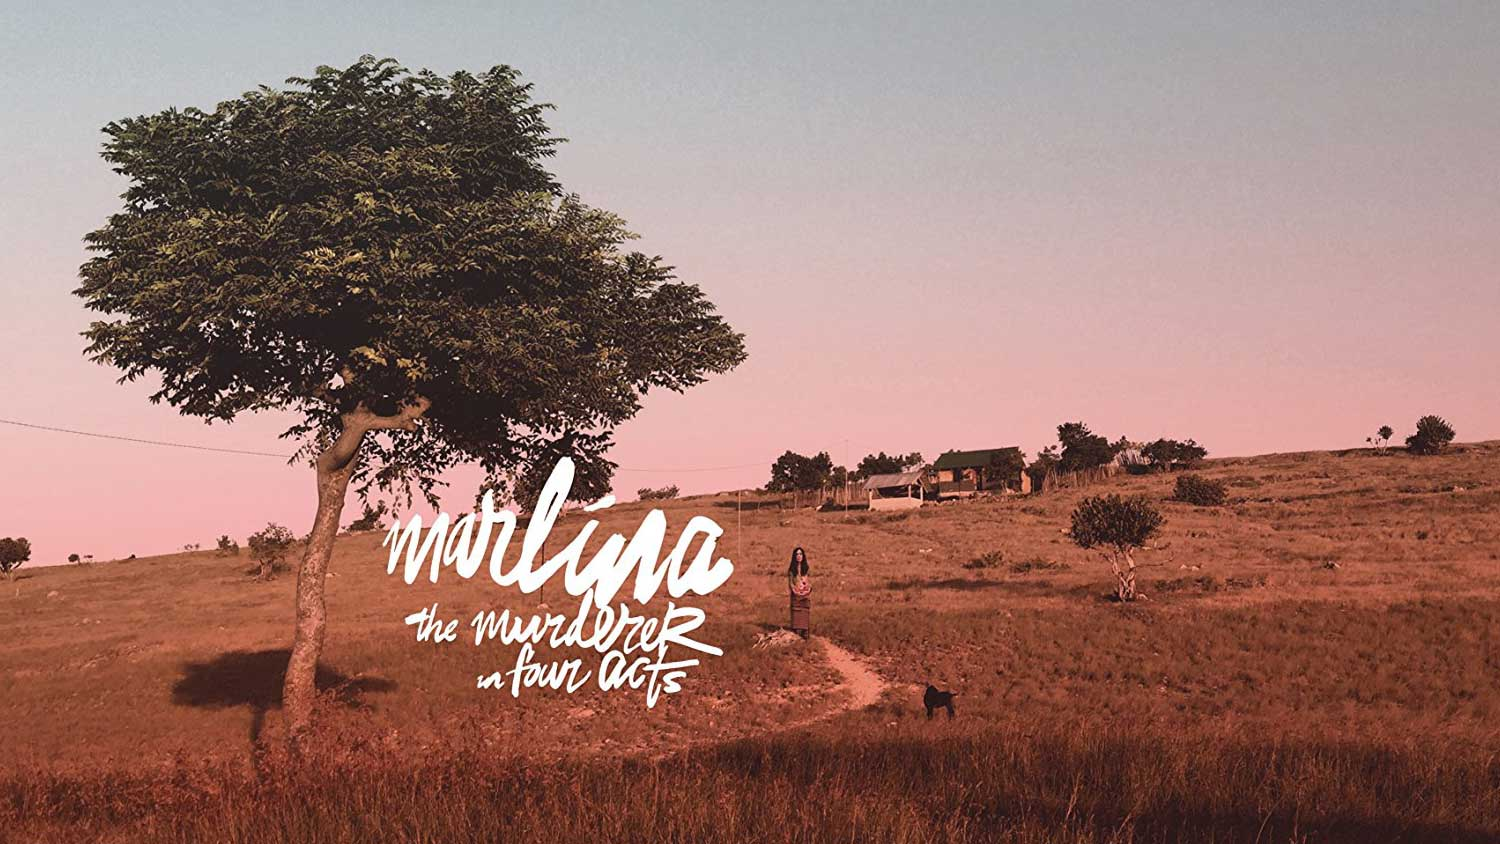 Marlina: The Murder In Four Acts – Women Fighting For Their Lives In A Powerful Movie - OC Movie Reviews - Movie Reviews, Movie News, Documentary Reviews, Short Films, Short Film Reviews, Trailers, Movie Trailers, Interviews, film reviews, film news, hollywood, indie films, documentaries